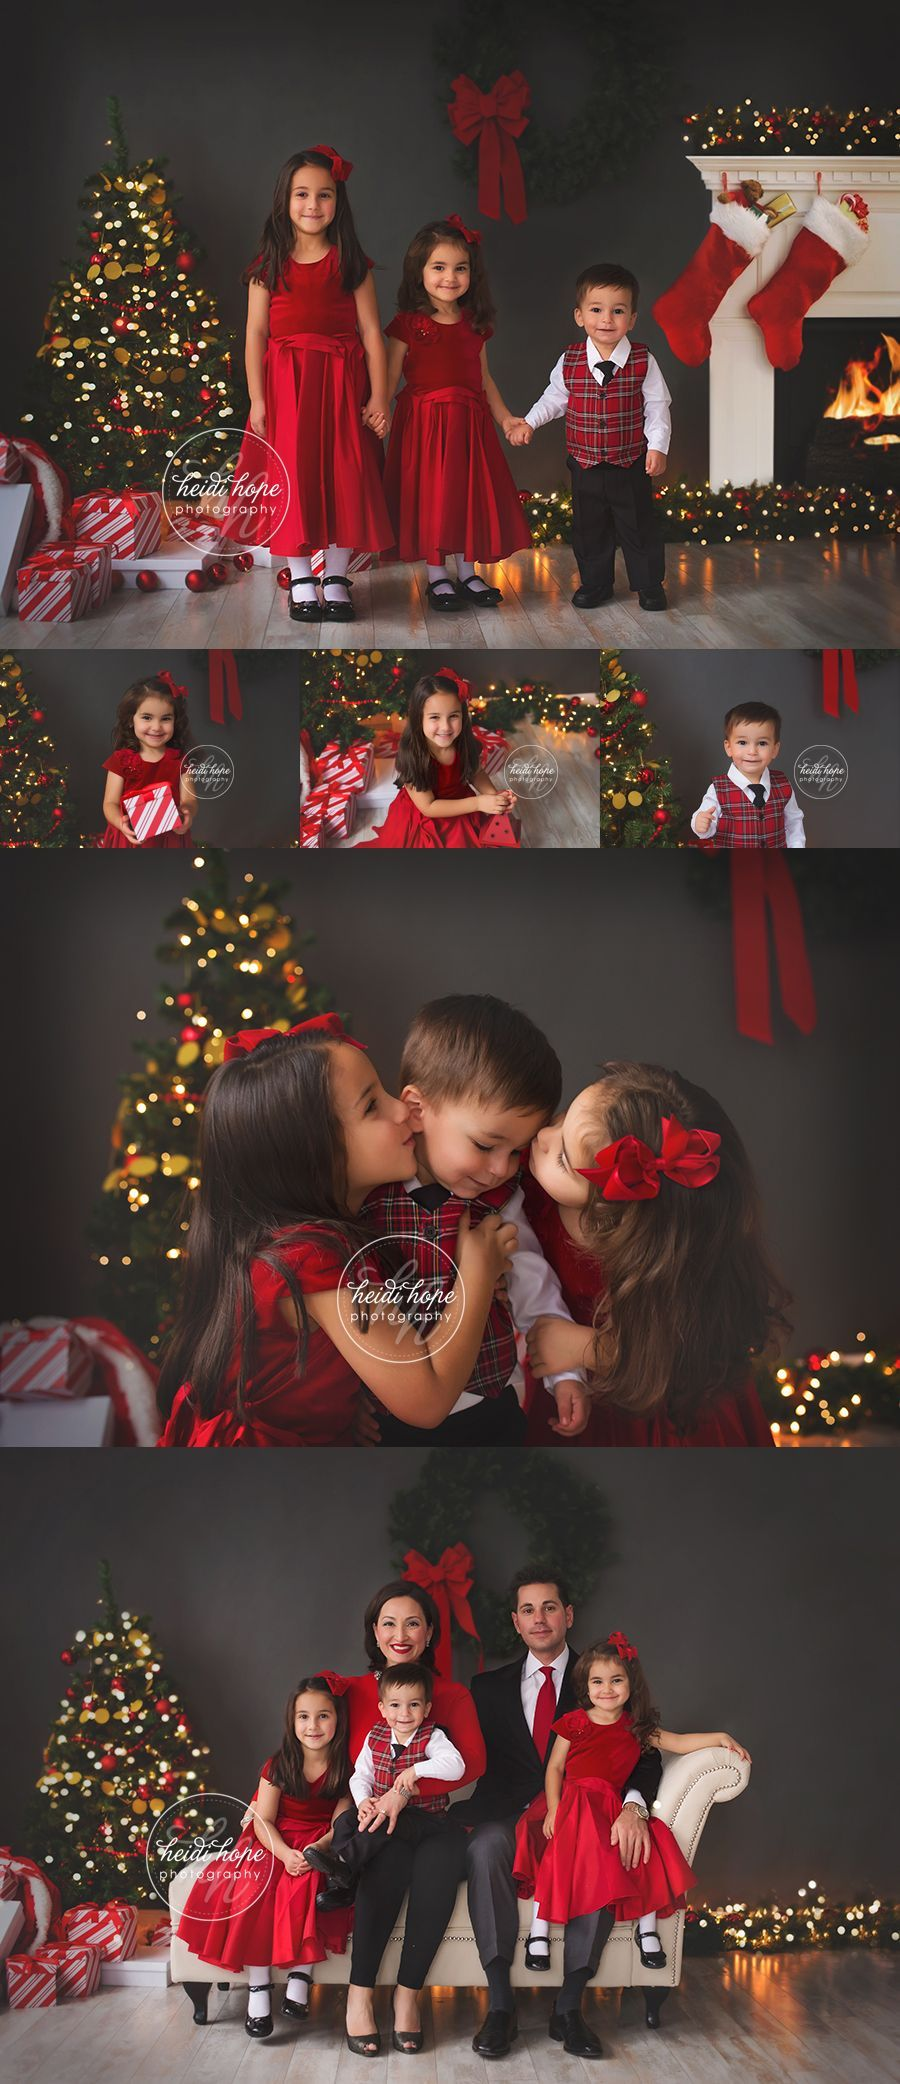 Christmas portraits in the studio by rhode island family